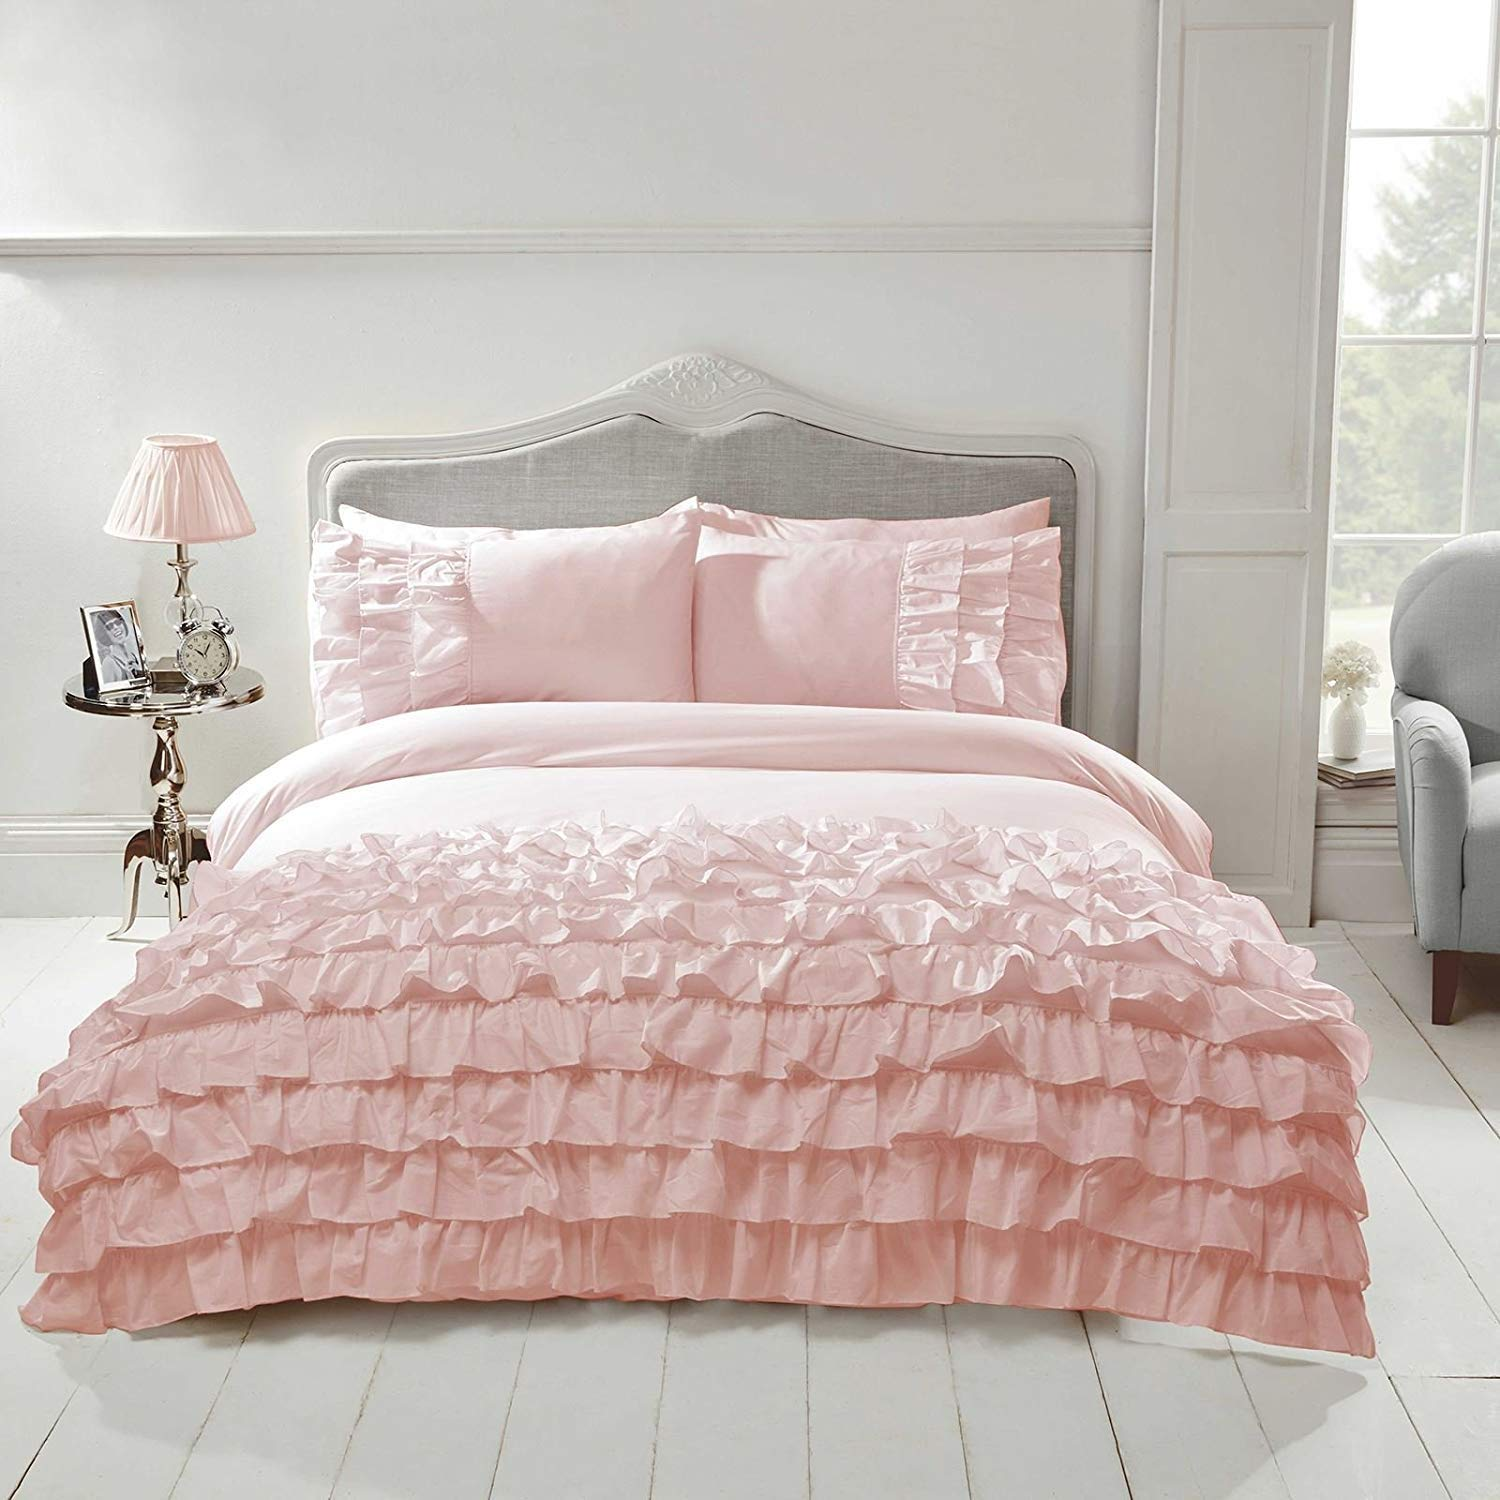 Flamenco Duvet Cover, Blush Pink, King 52% Polyester 48% Cotton